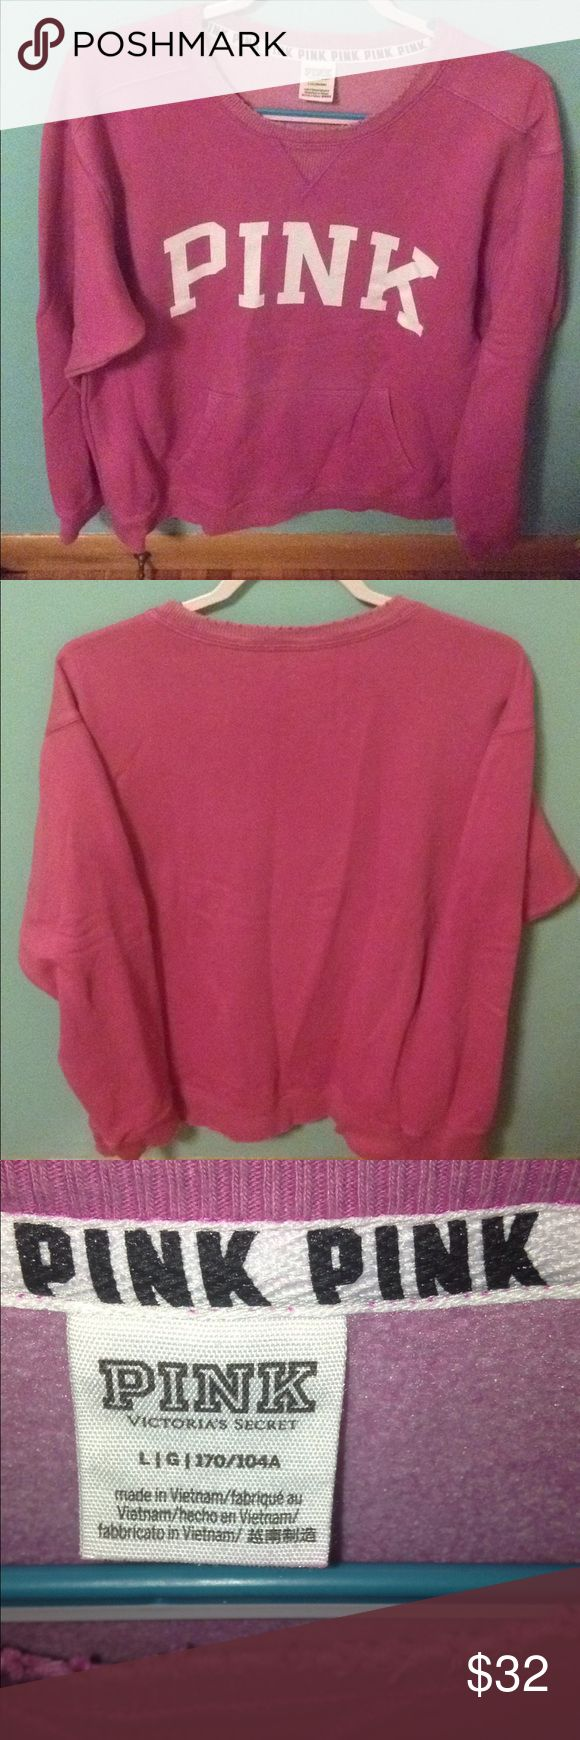 Best 25  Pink vs sweater ideas on Pinterest | Pink clothing brand ...